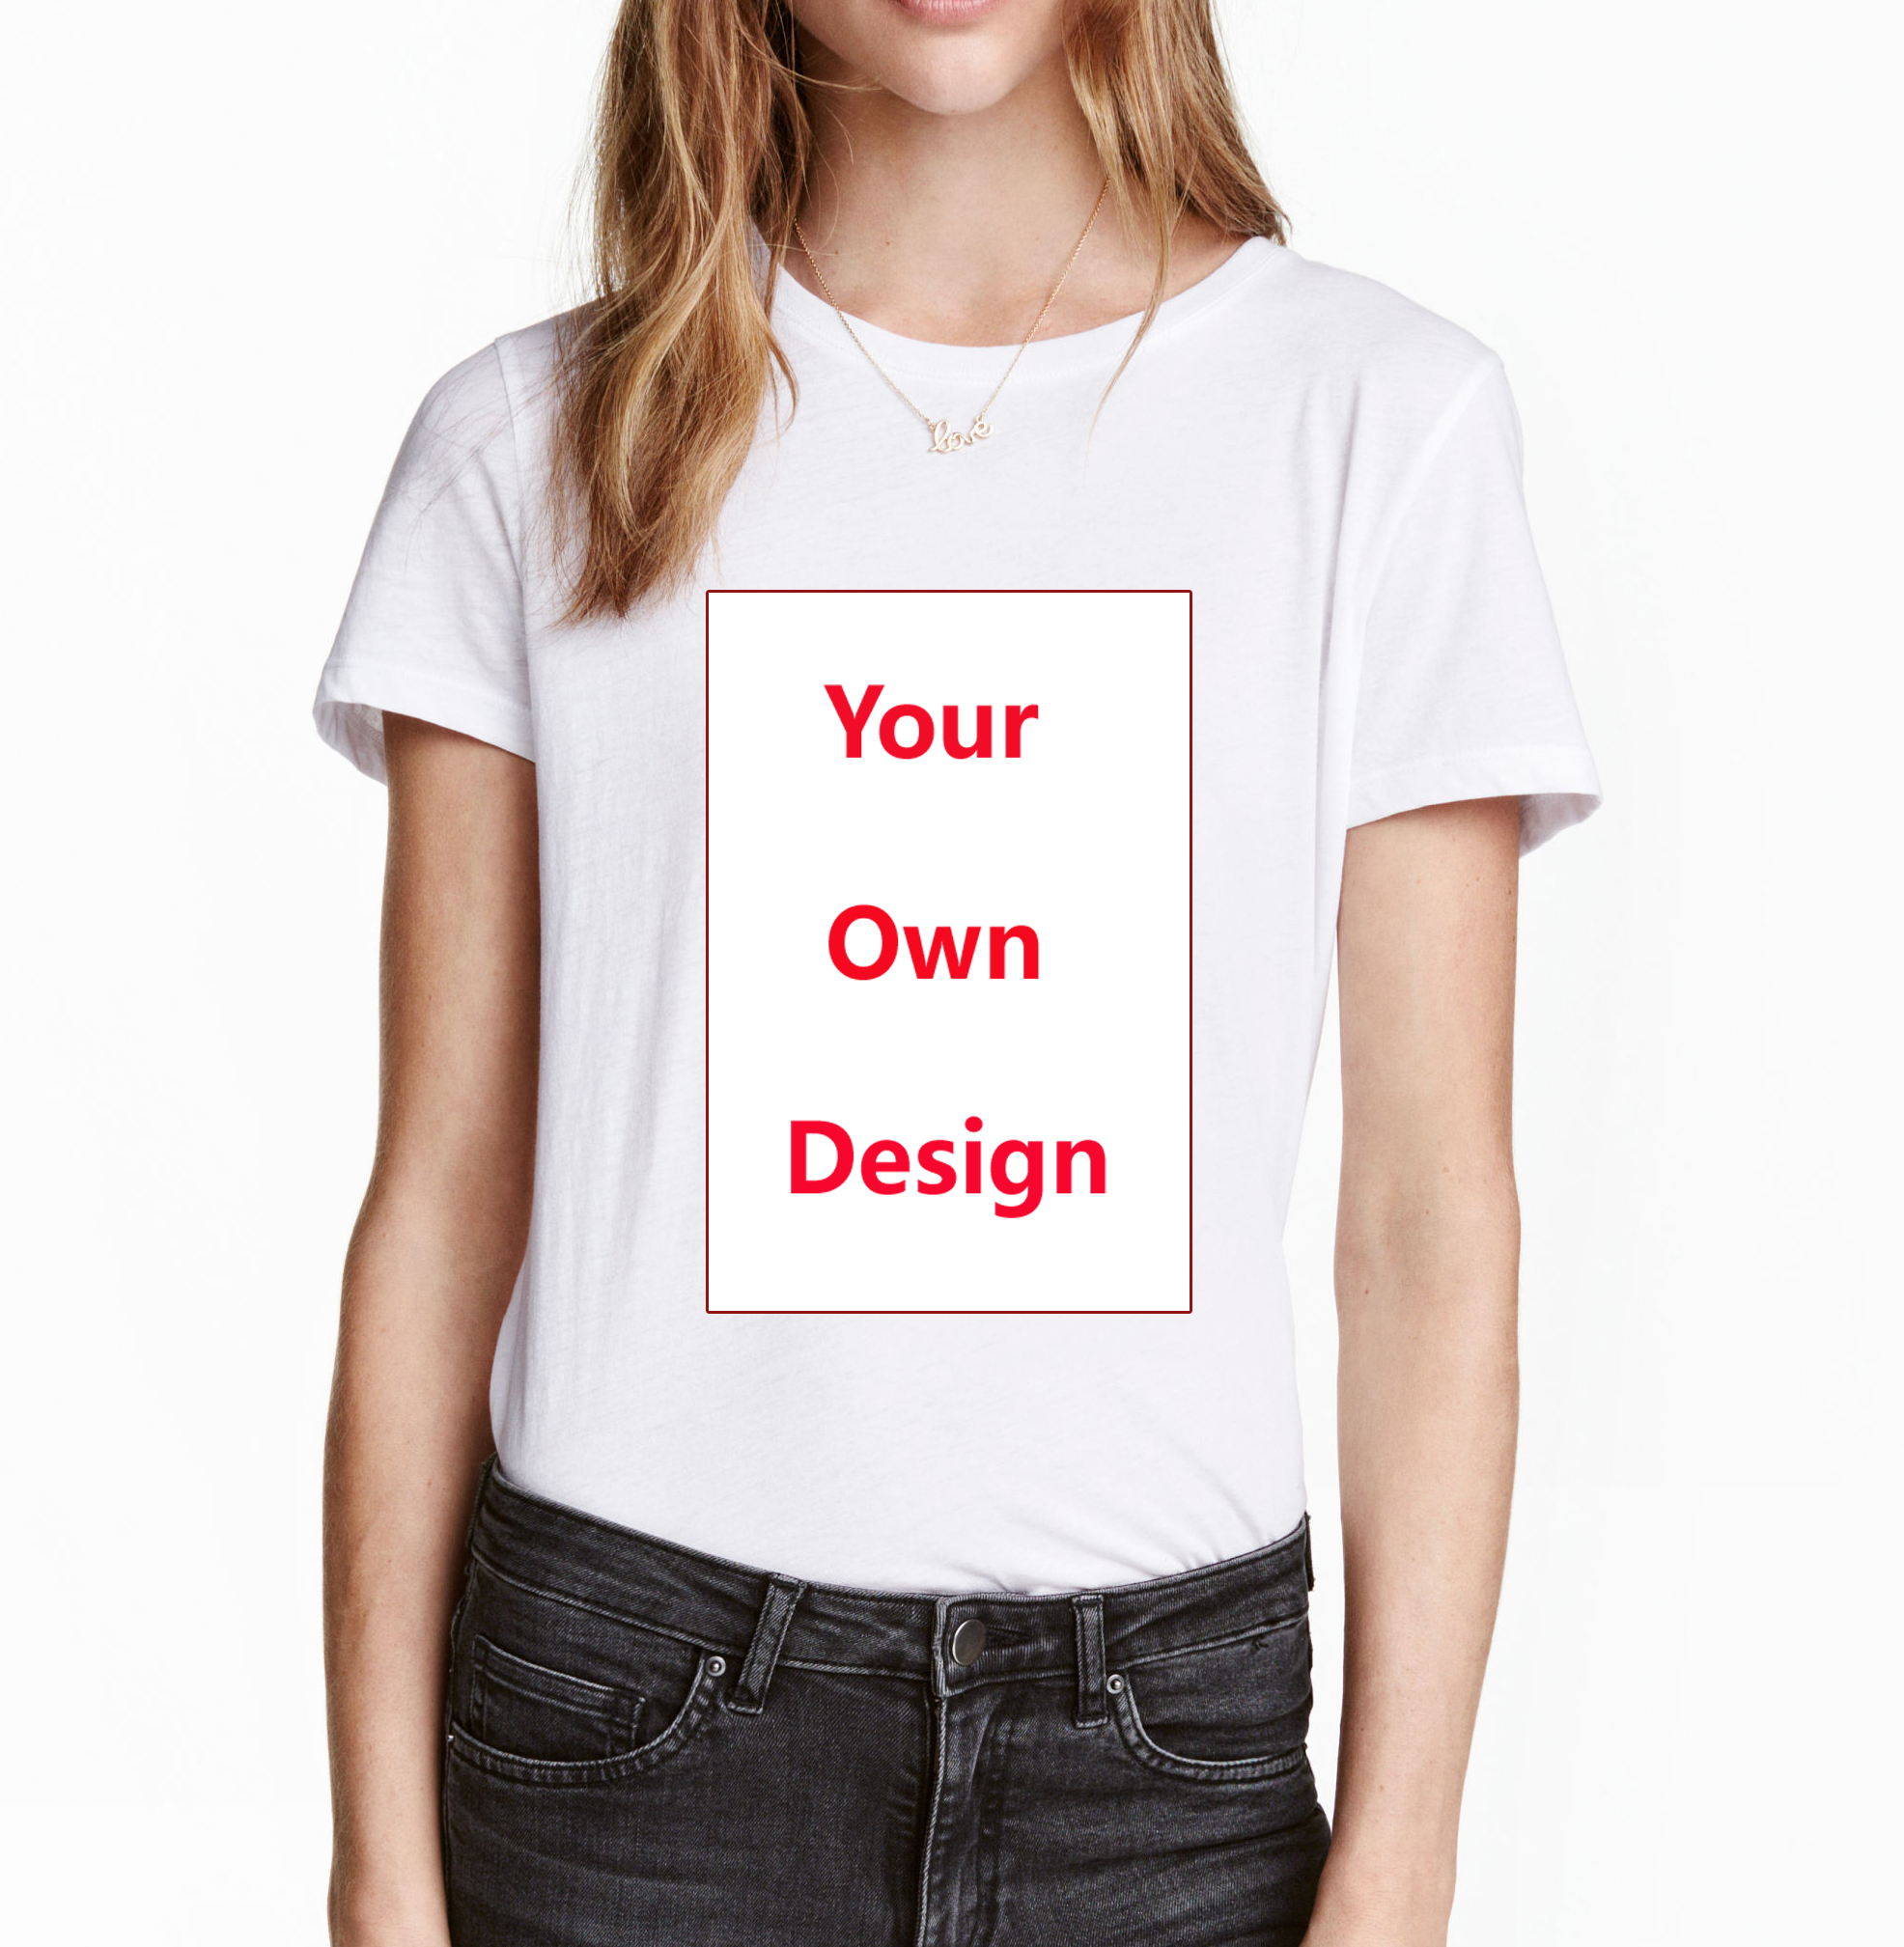 Design your own t shirt good quality - Buy 2017 Custom Made Women T Shirt Put Your Own Design And Logo High Quality Tops Tees For Lady Customized T Shirt S Xl